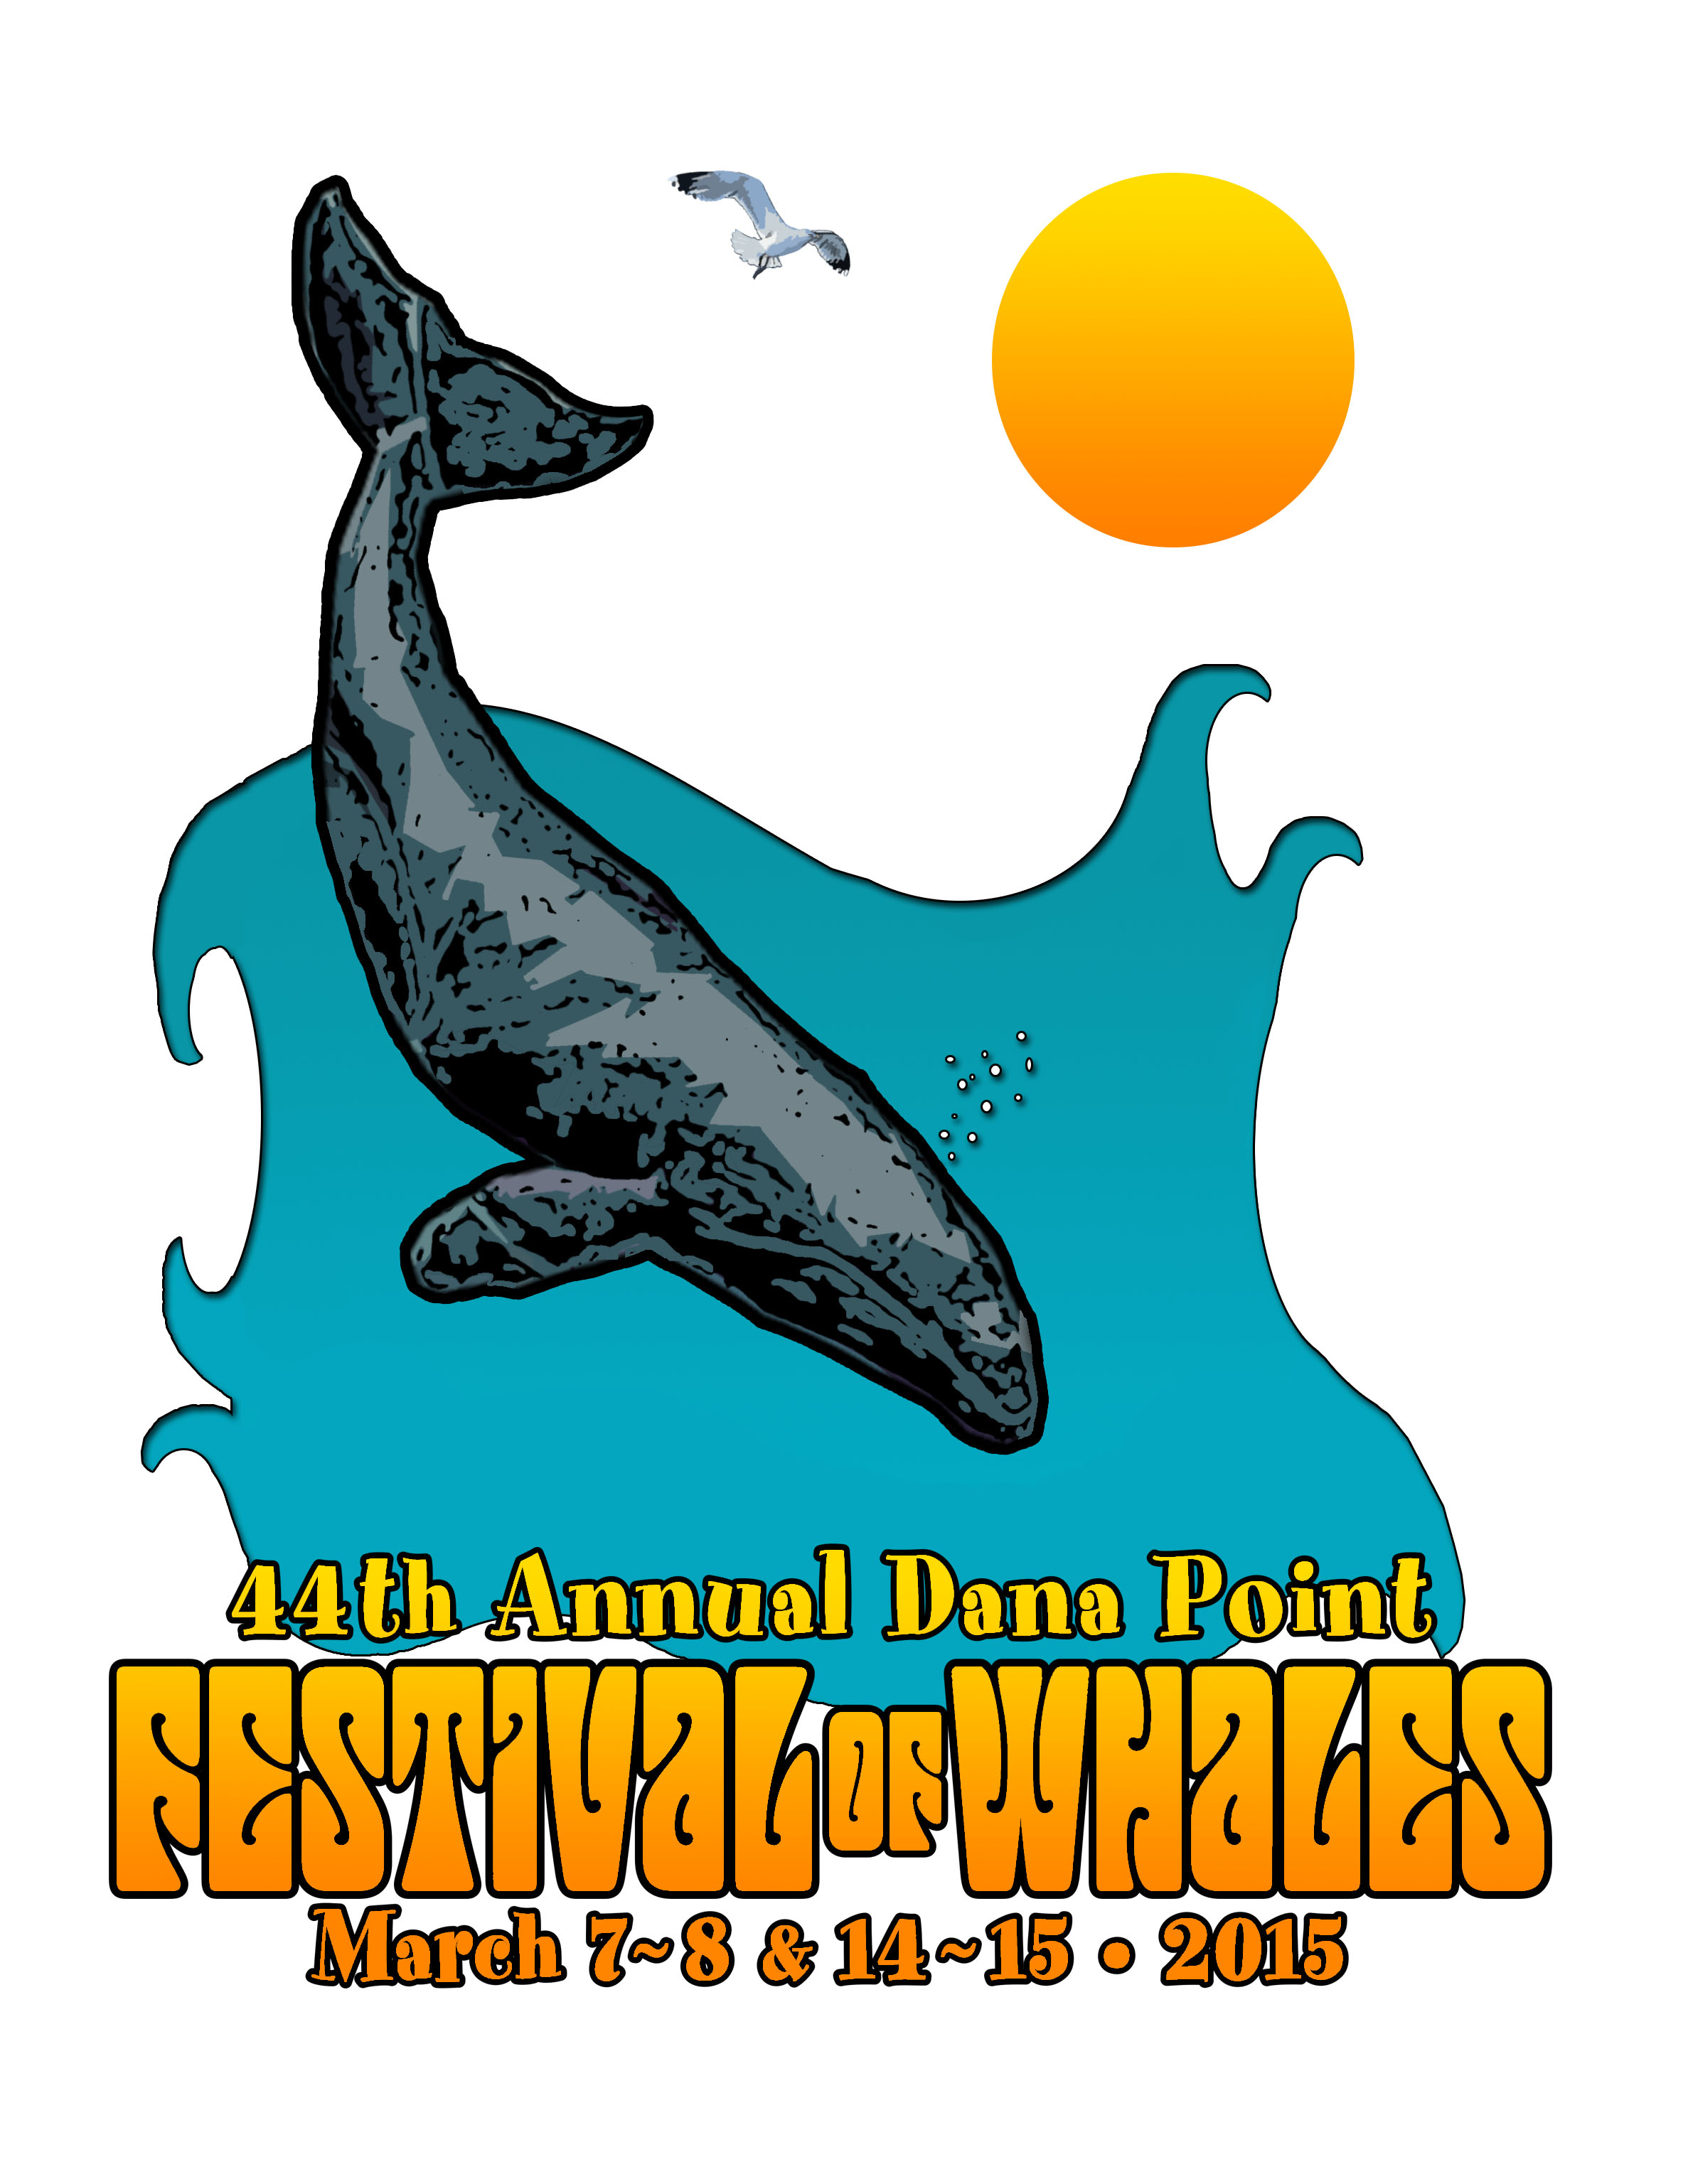 festival of whales logo design winner named | dana point times